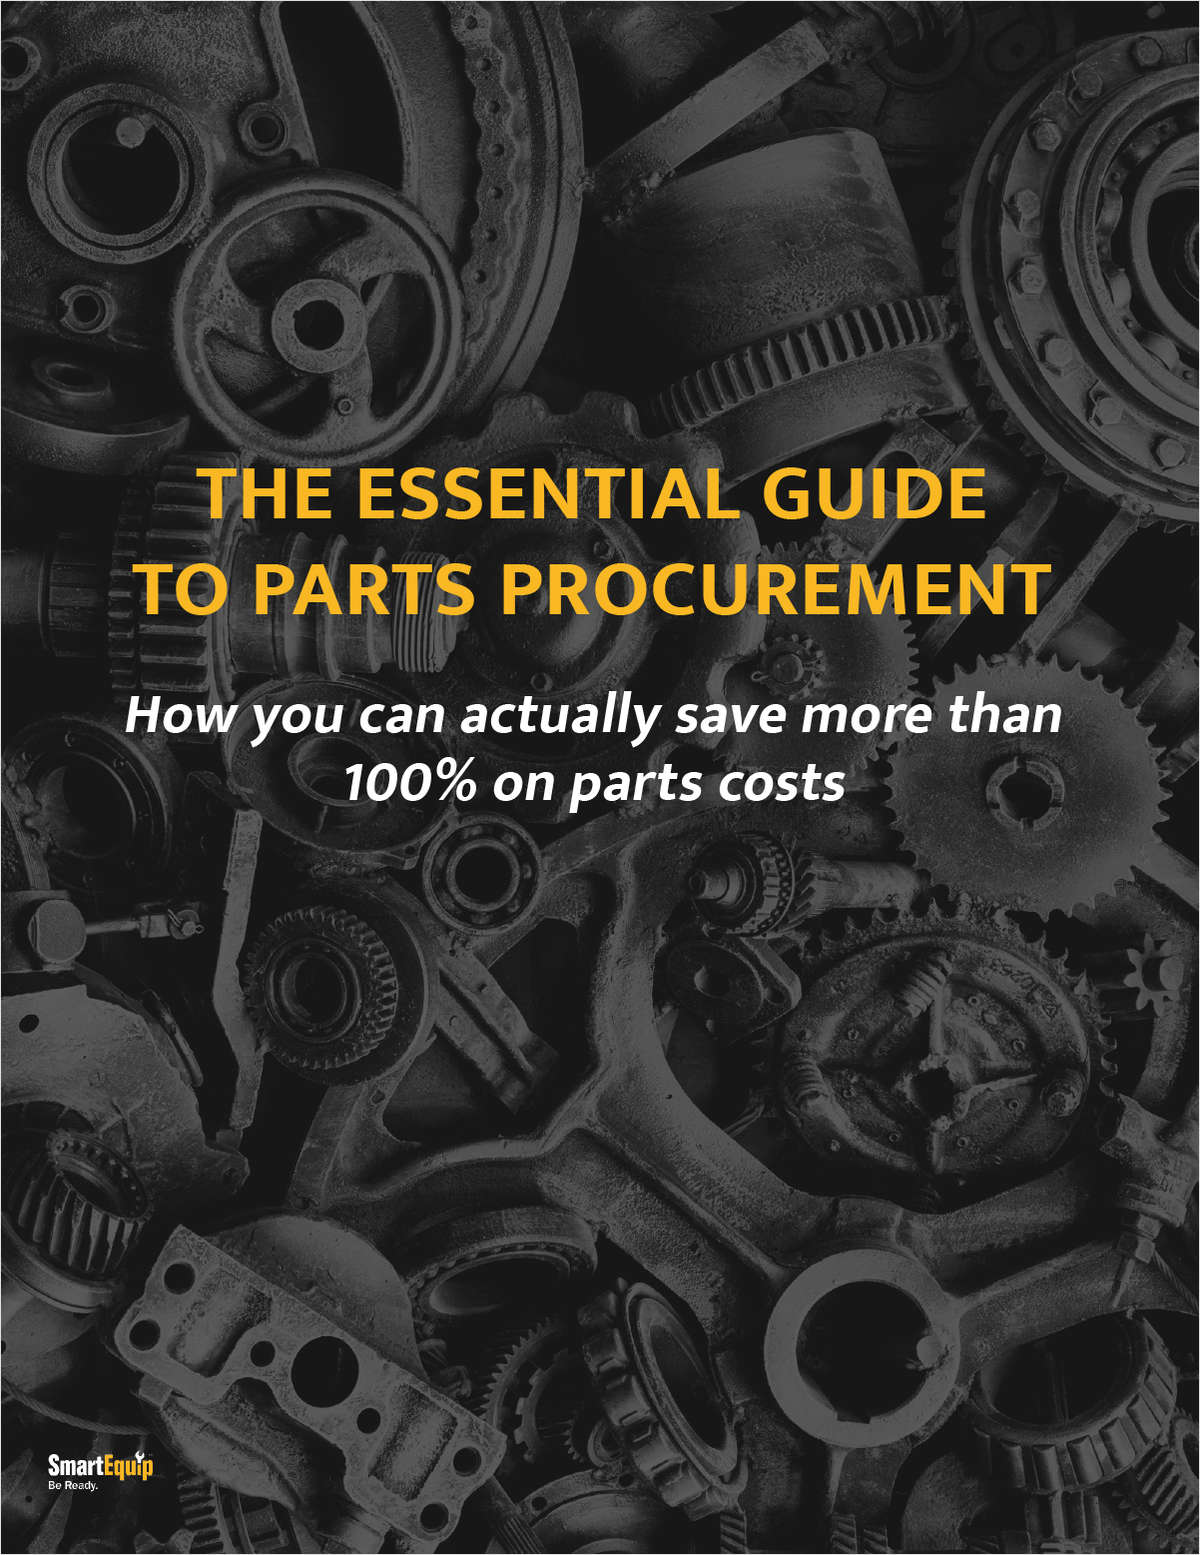 The Essential Guide to Parts Procurement